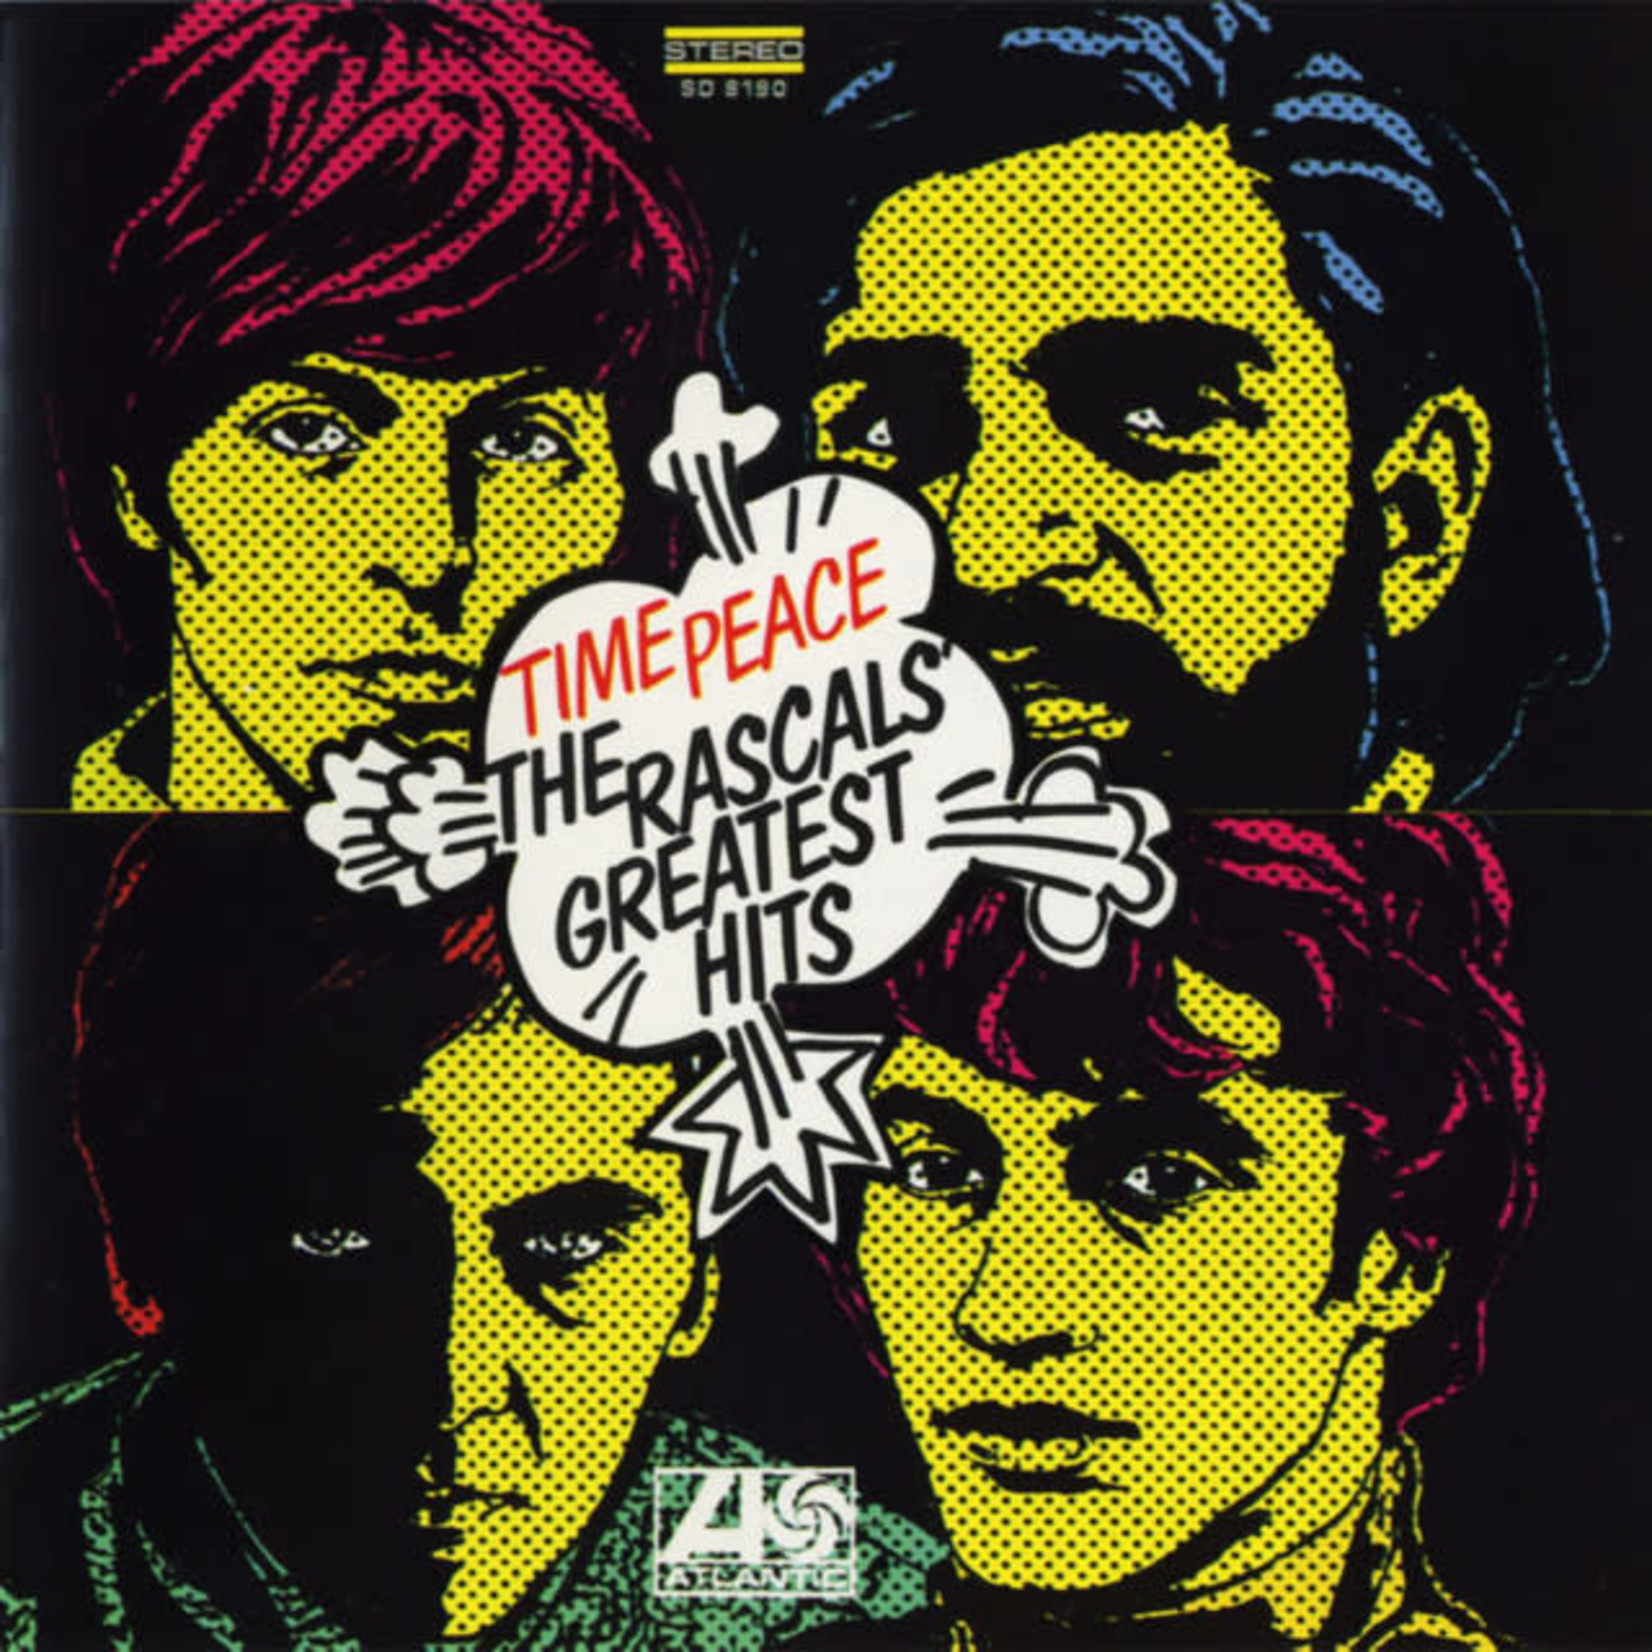 Vinyl The Rascals - Time Peace Greatest Hits